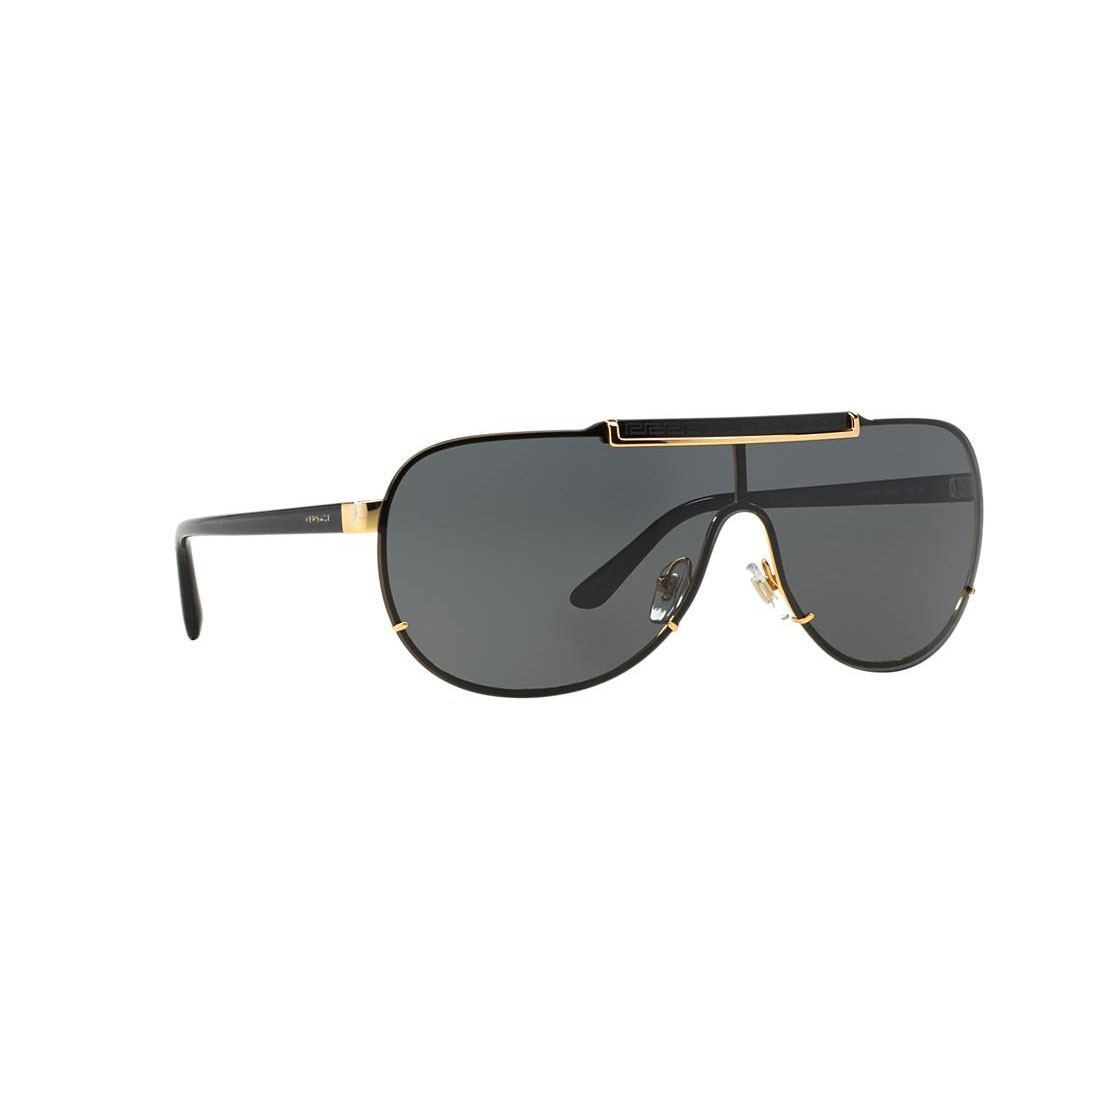 Versace Sunglasses VE2140 100287 40mm